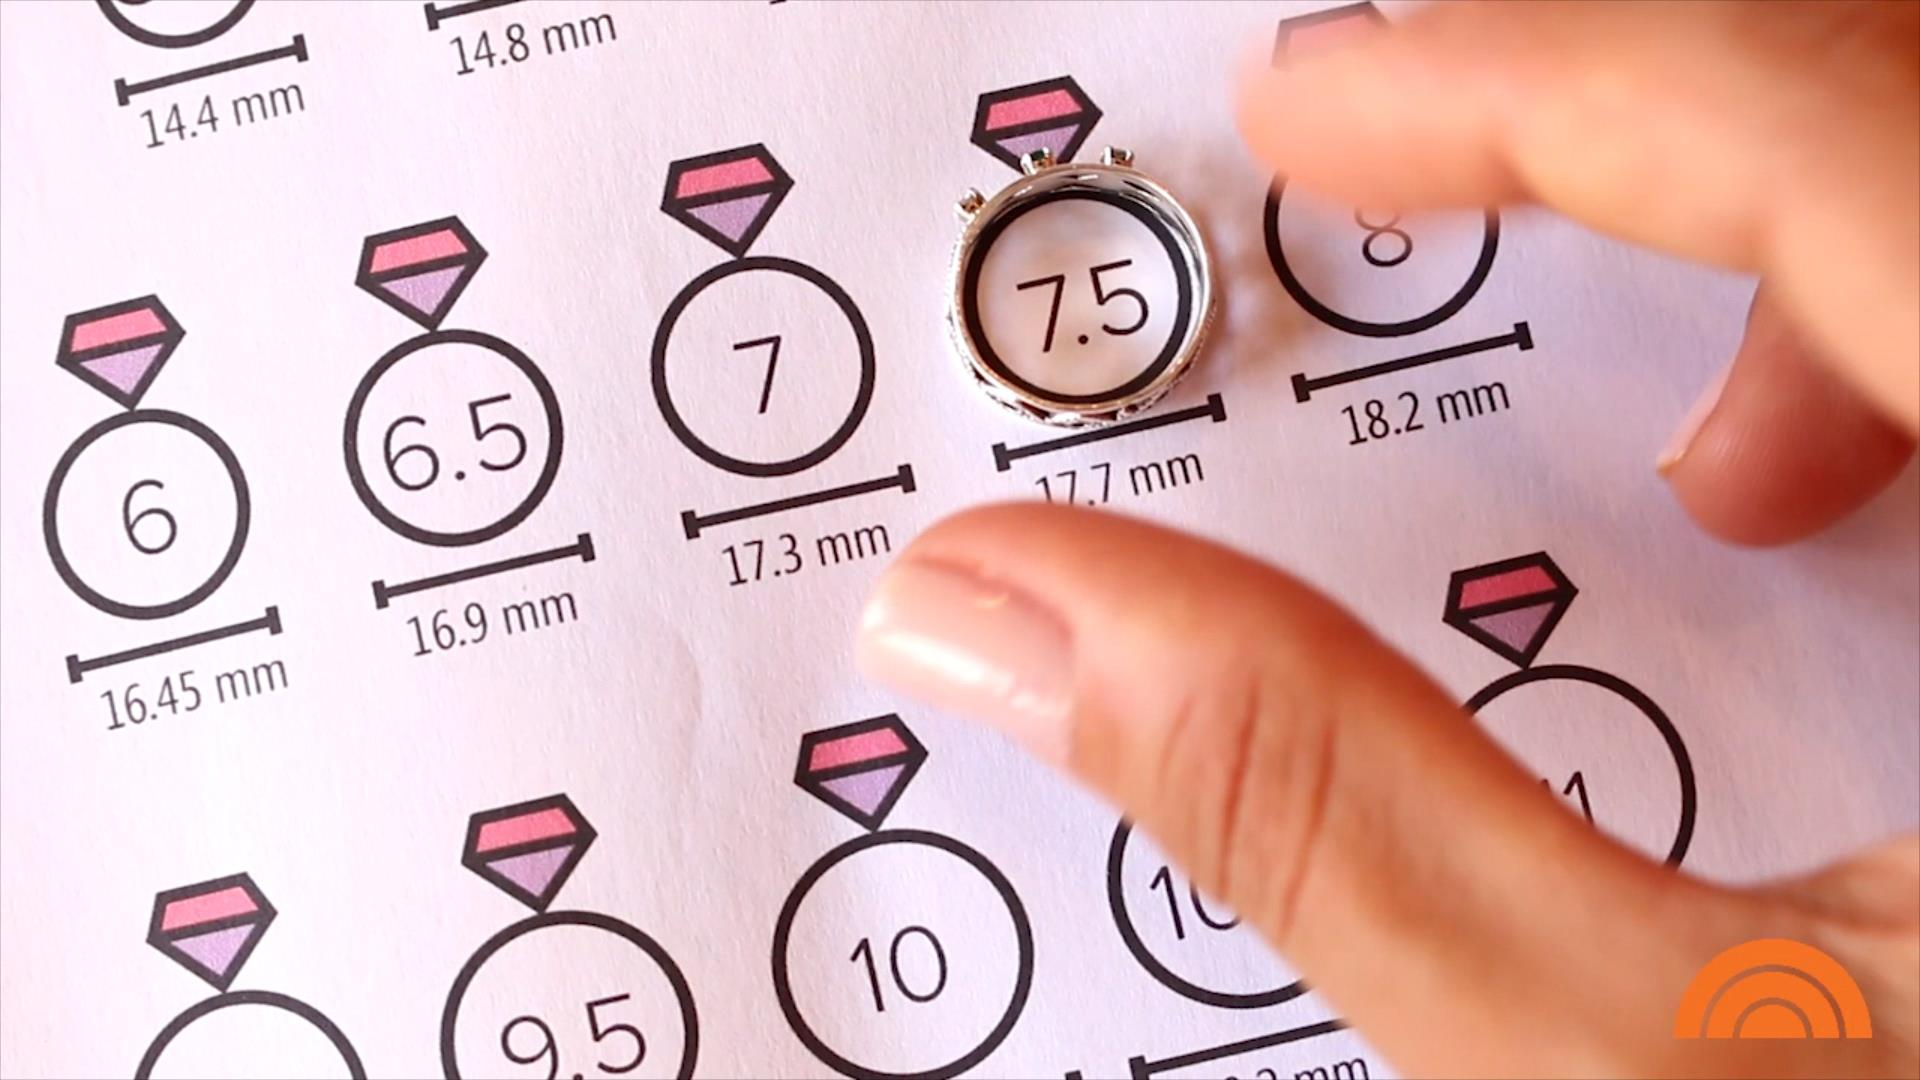 How to find your ring size: Use this paper-measuring method!